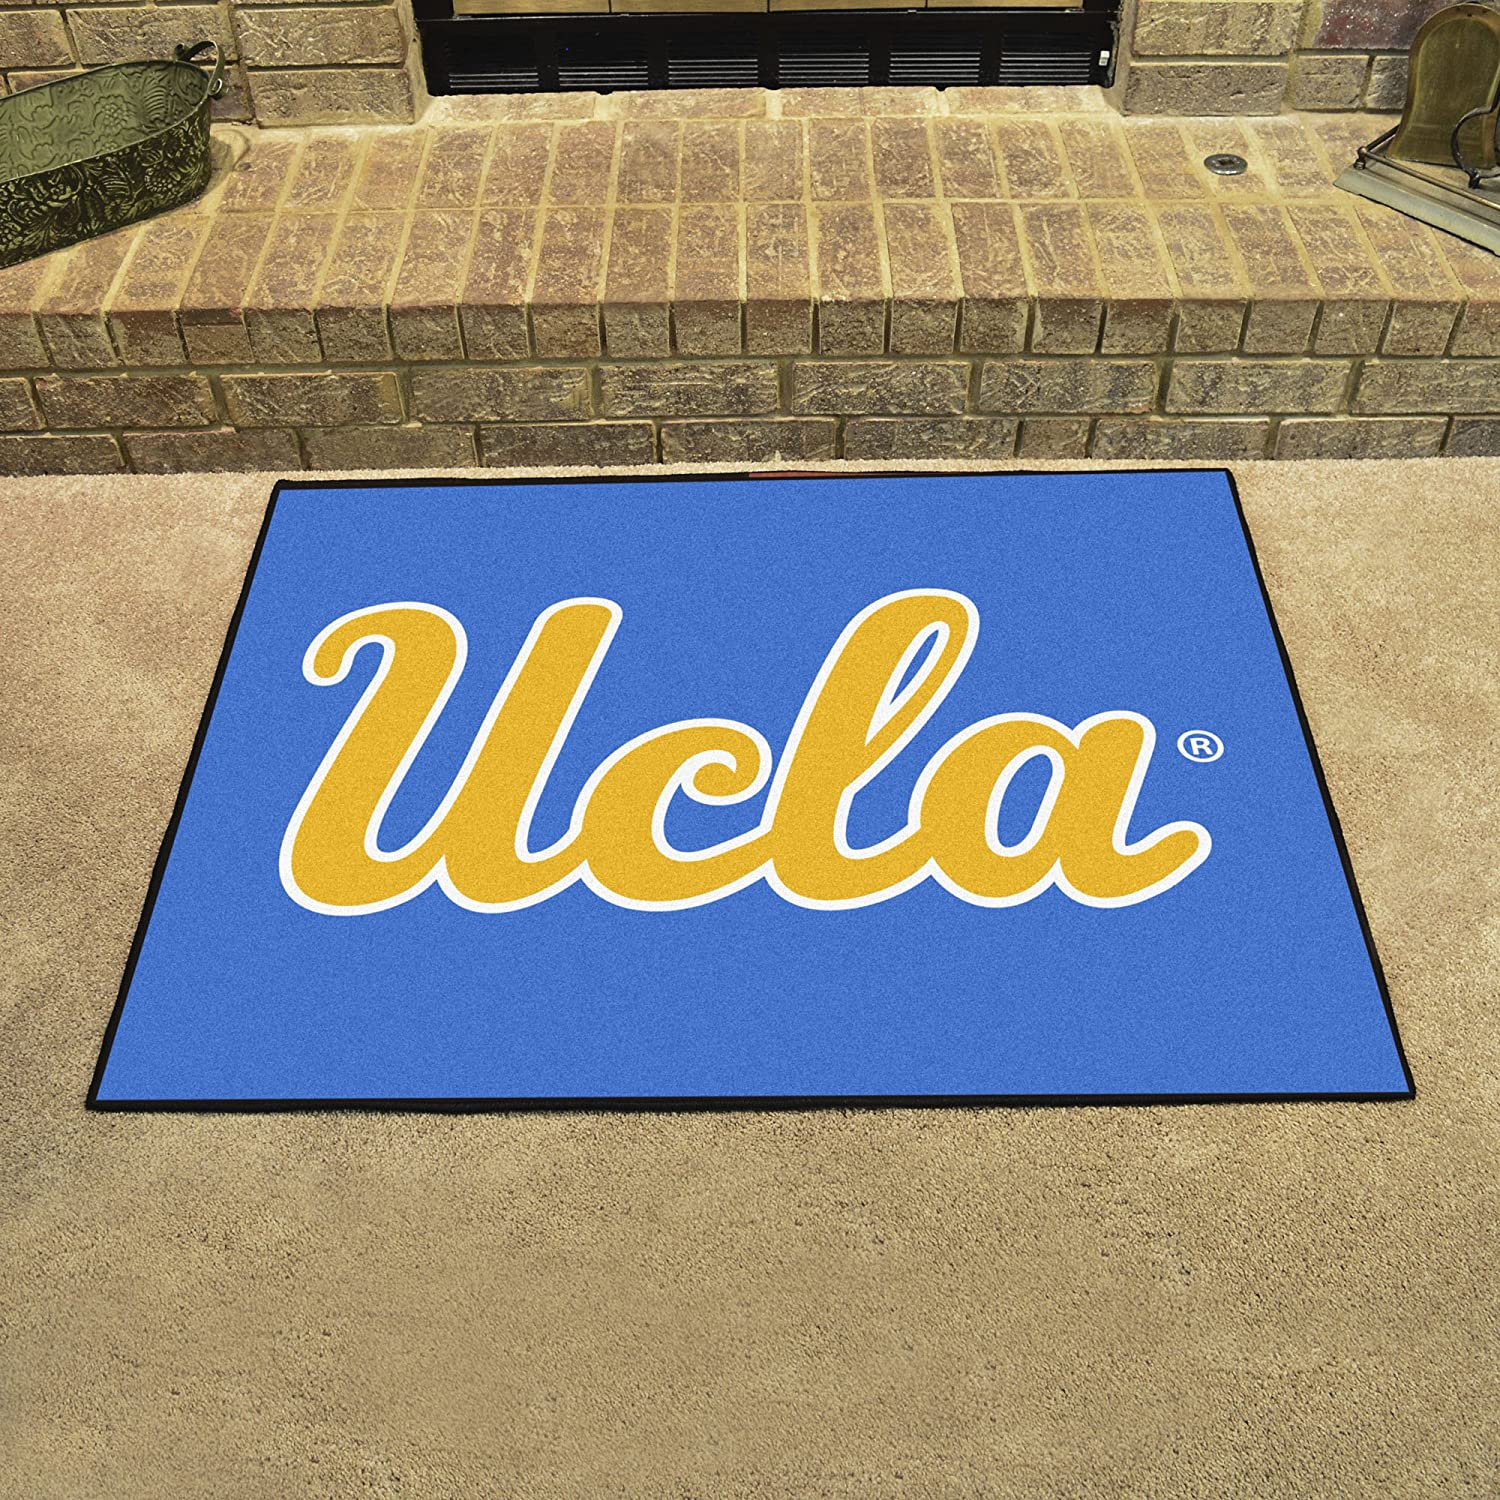 Fanmats All-Star Bath Mat - California Angeles Los Manufacturer regenerated Max 80% OFF product University of